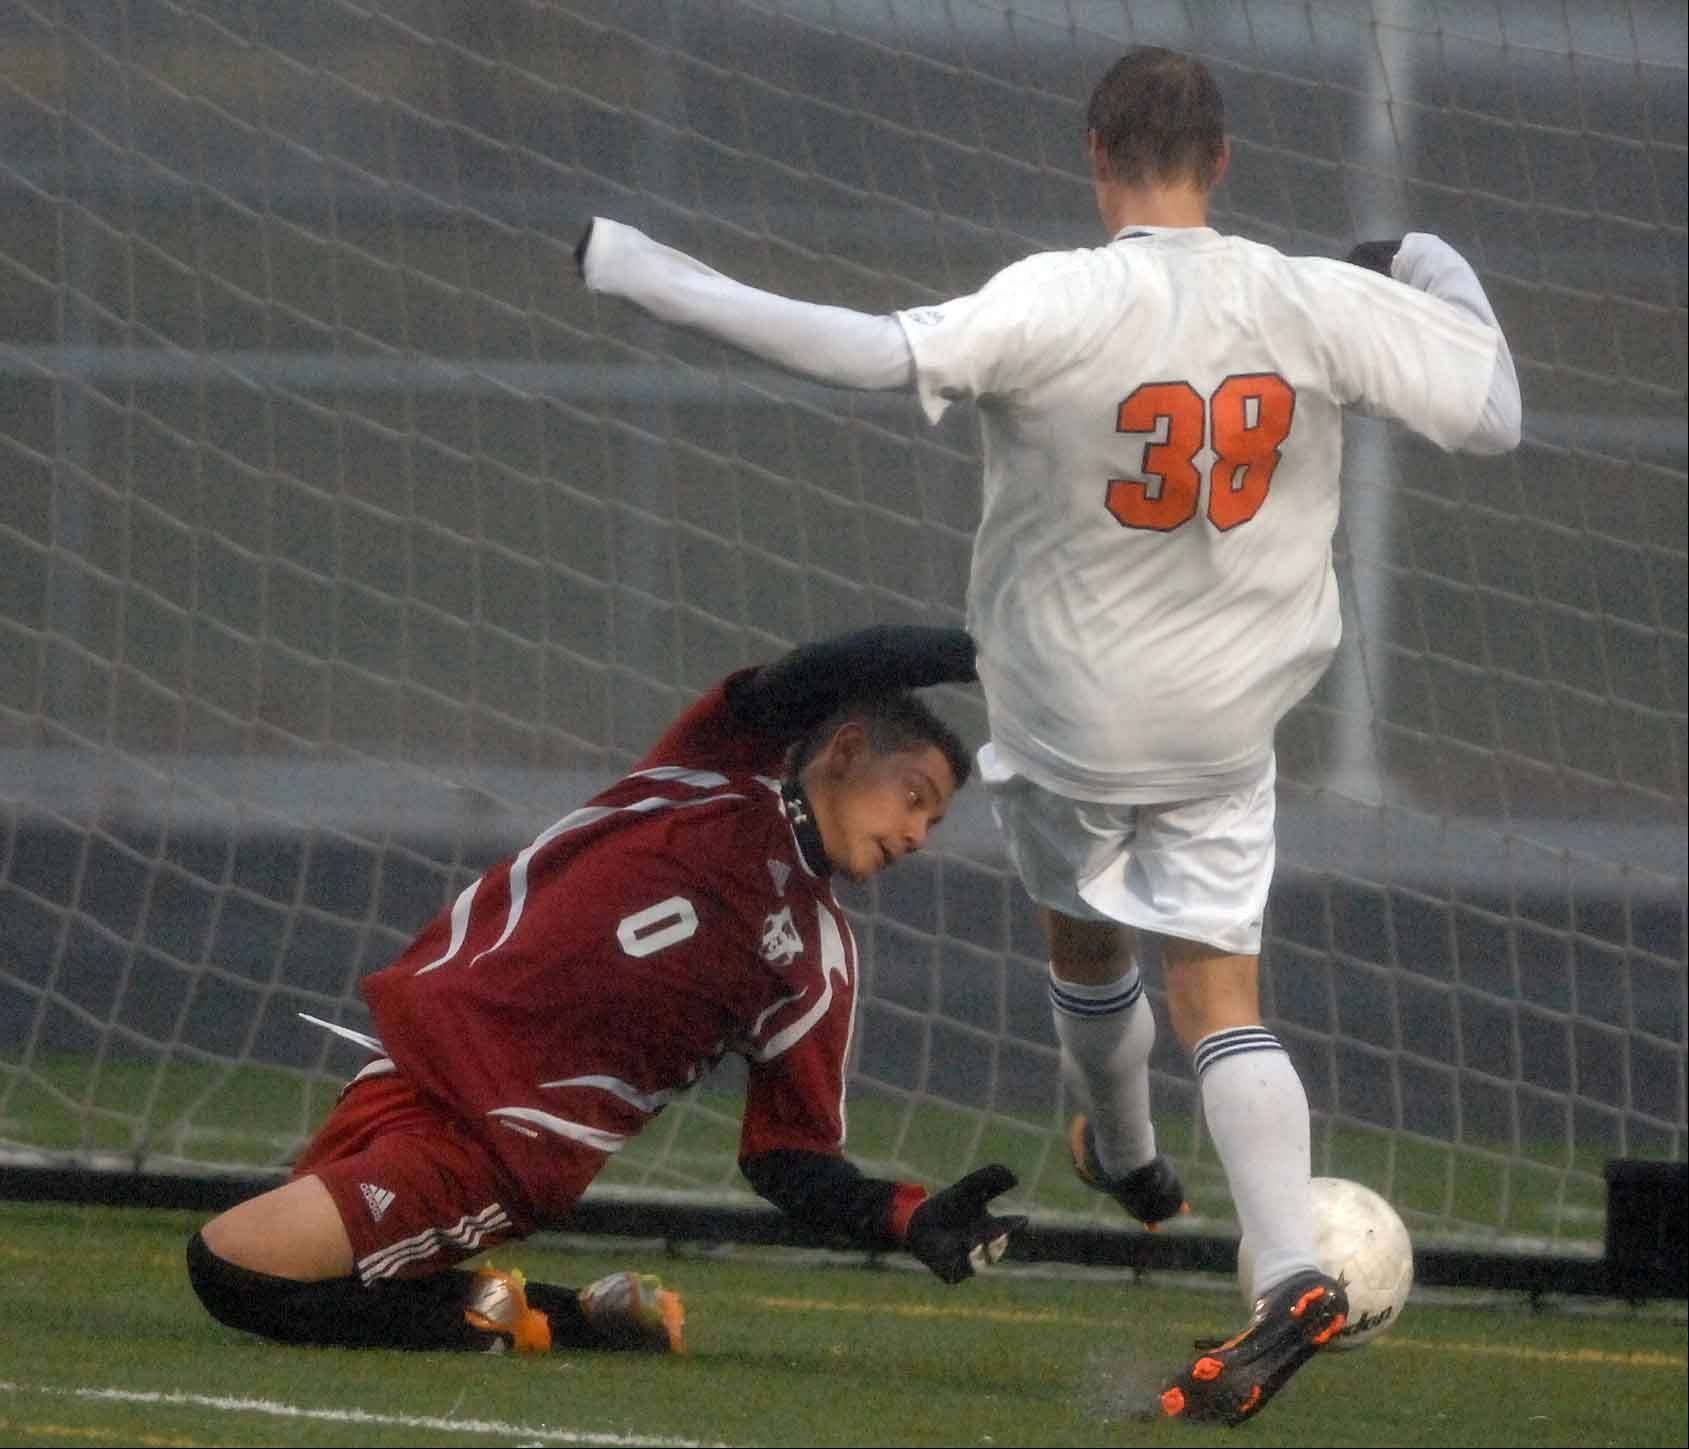 Naperville North's Evan Trychta drills one into the goal against Oswego Wednesday.